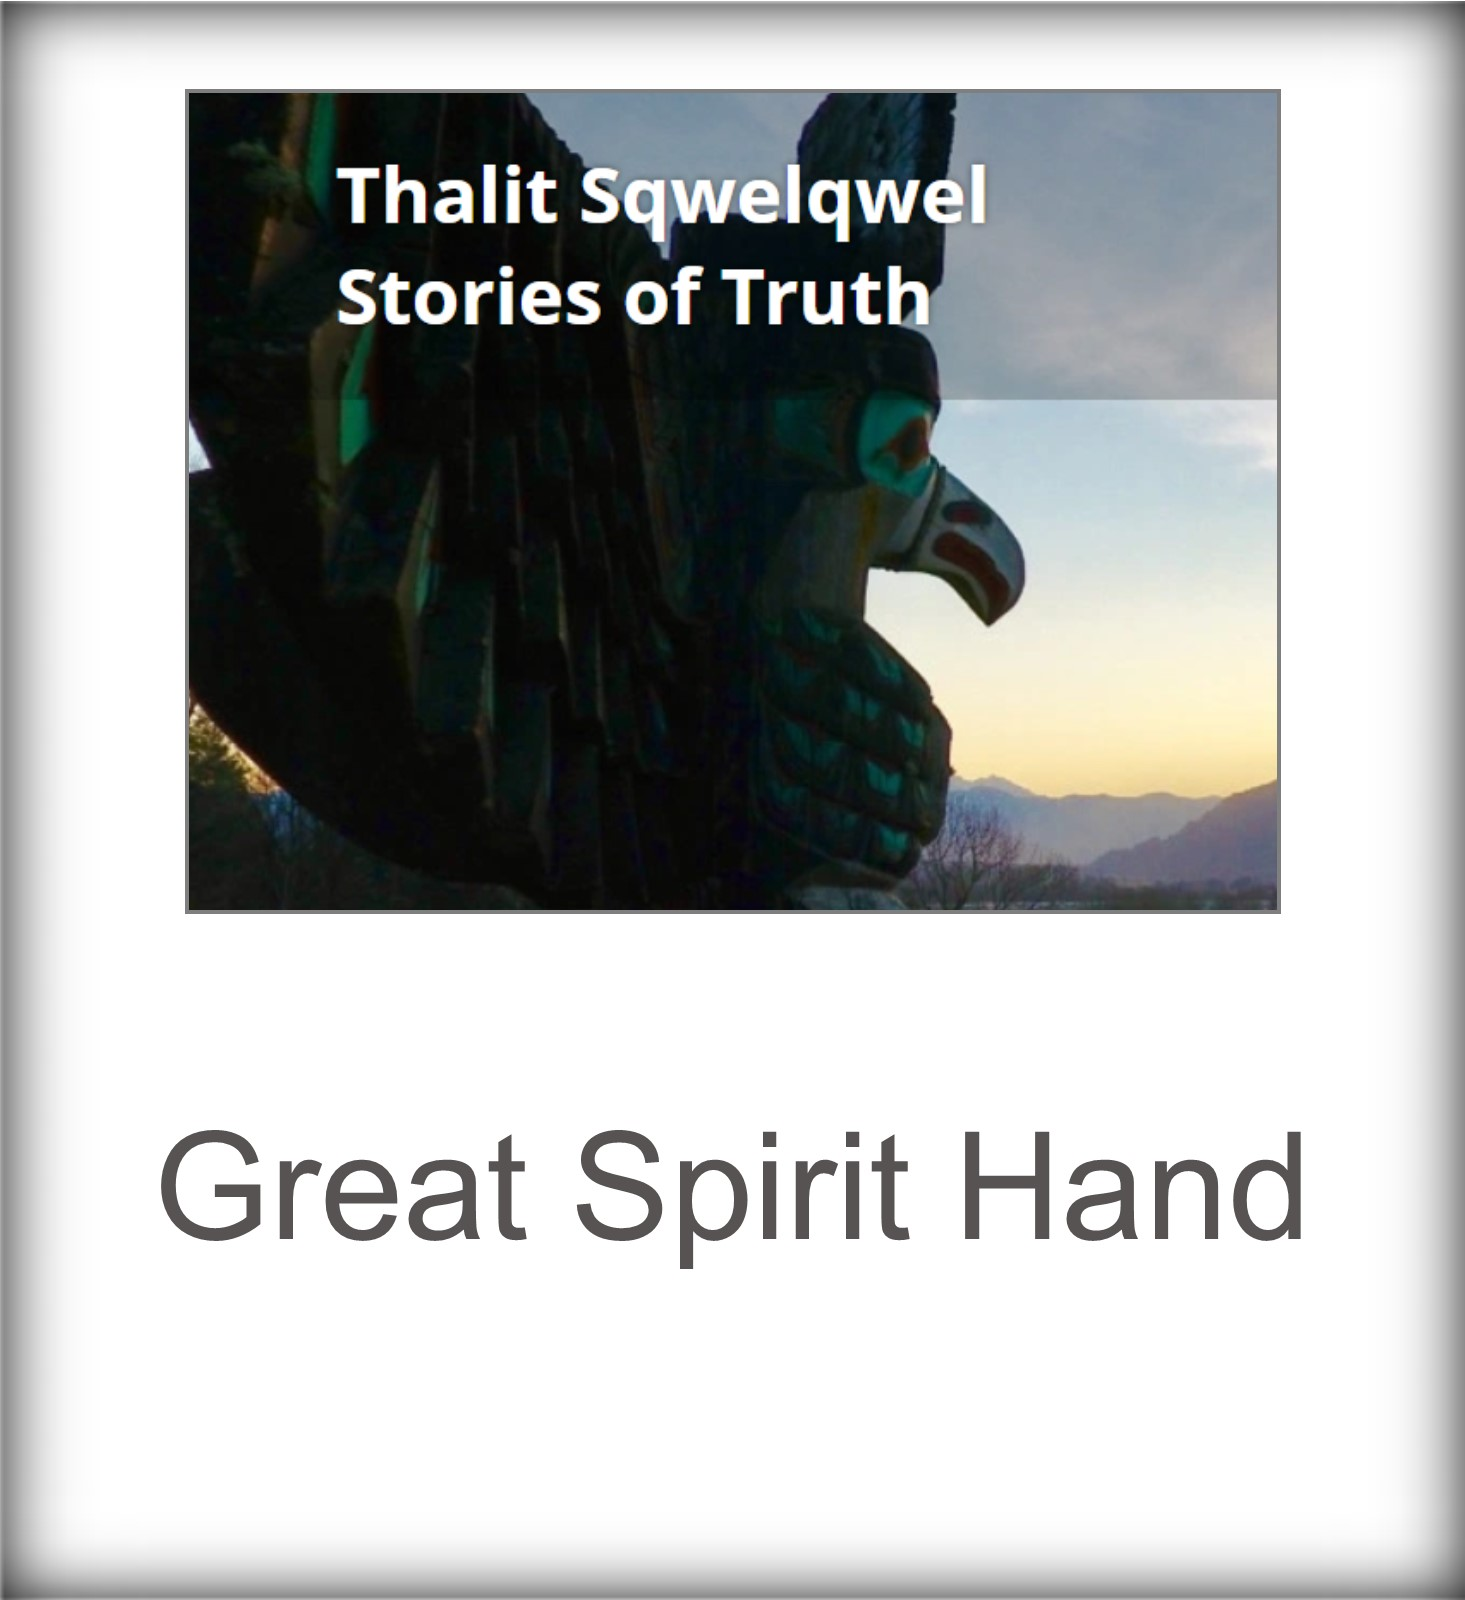 Great Spirit Hand